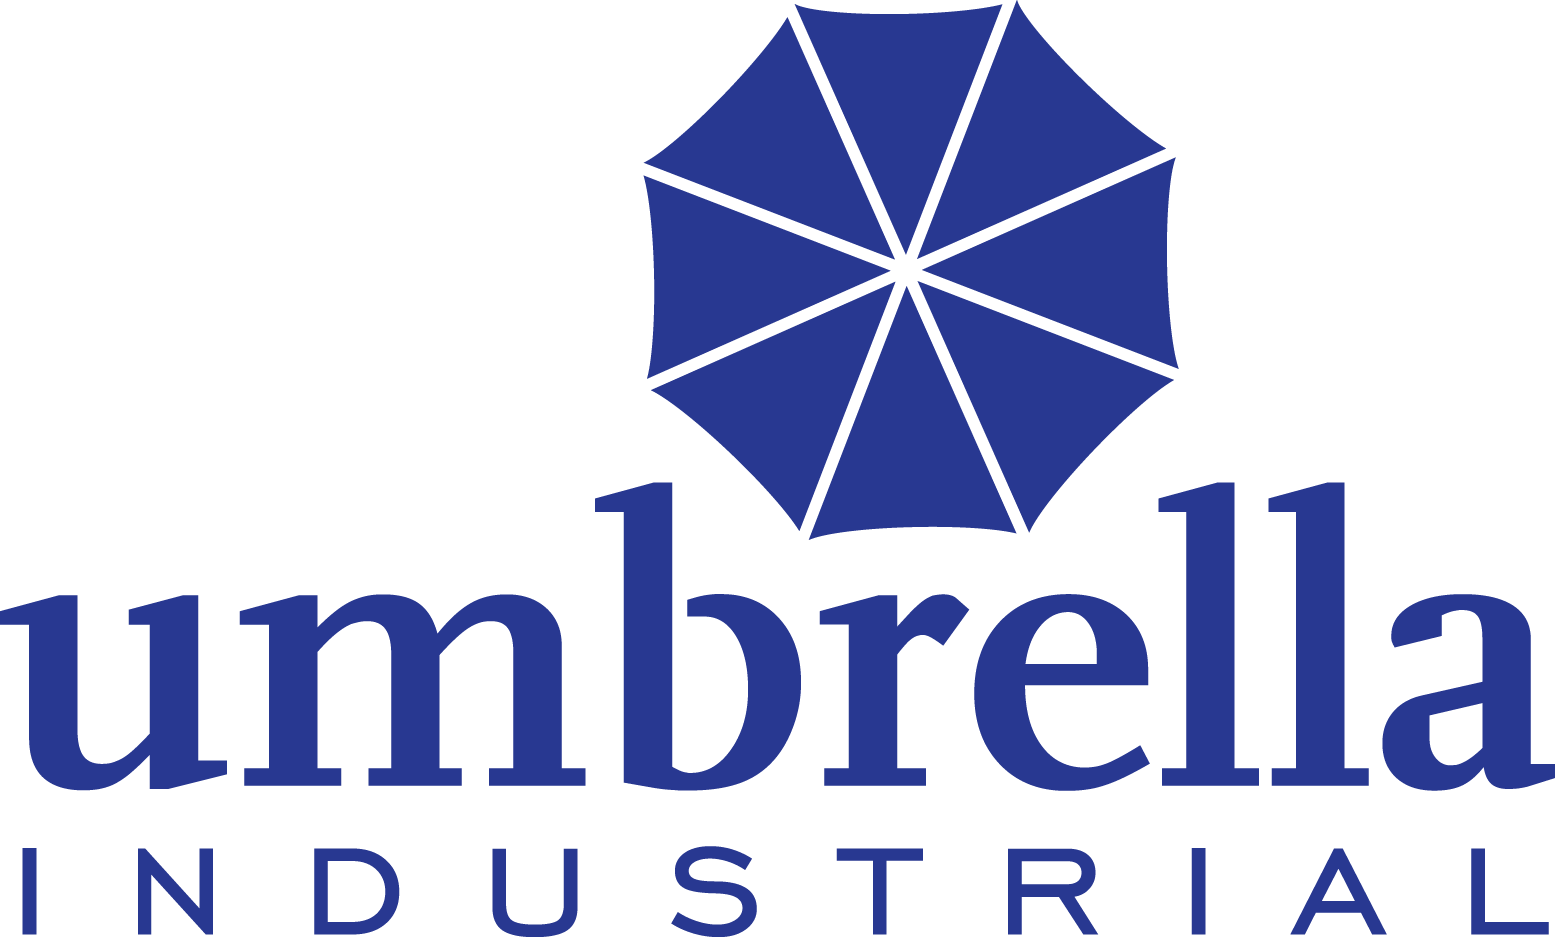 Umbrella Industrial Logo